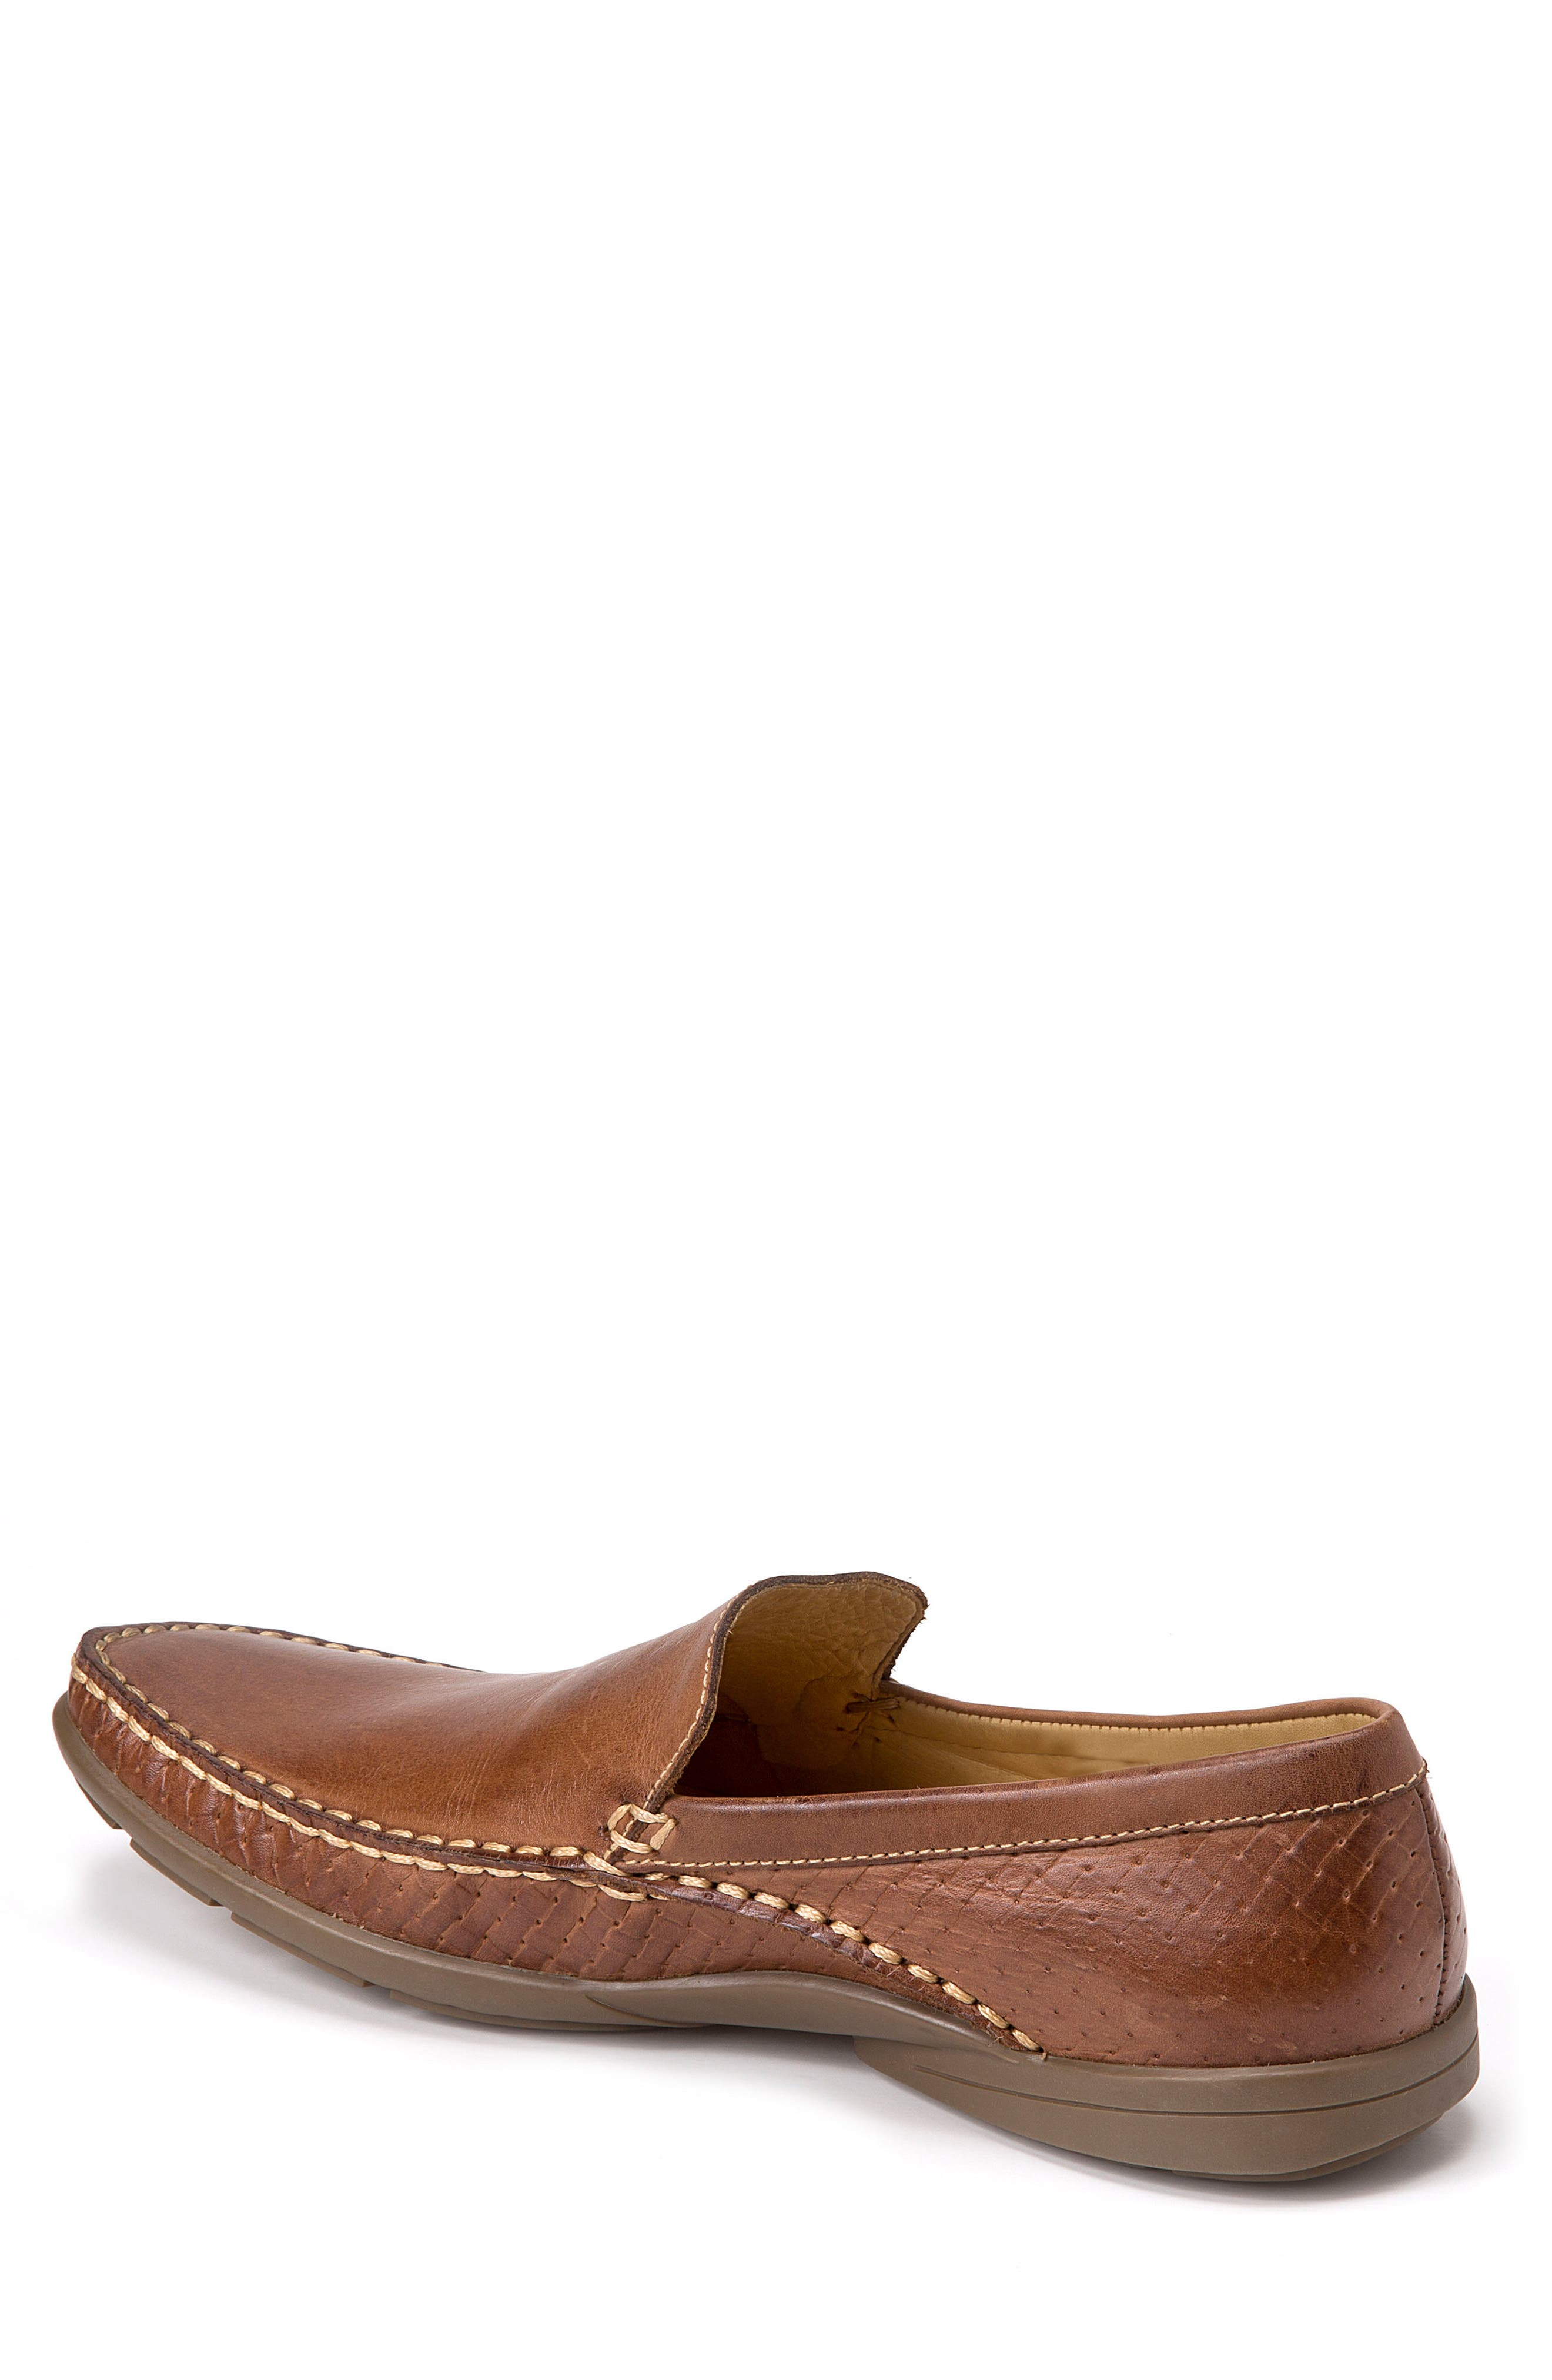 Dudley Moc Toe Loafer,                             Alternate thumbnail 2, color,                             TAN LEATHER